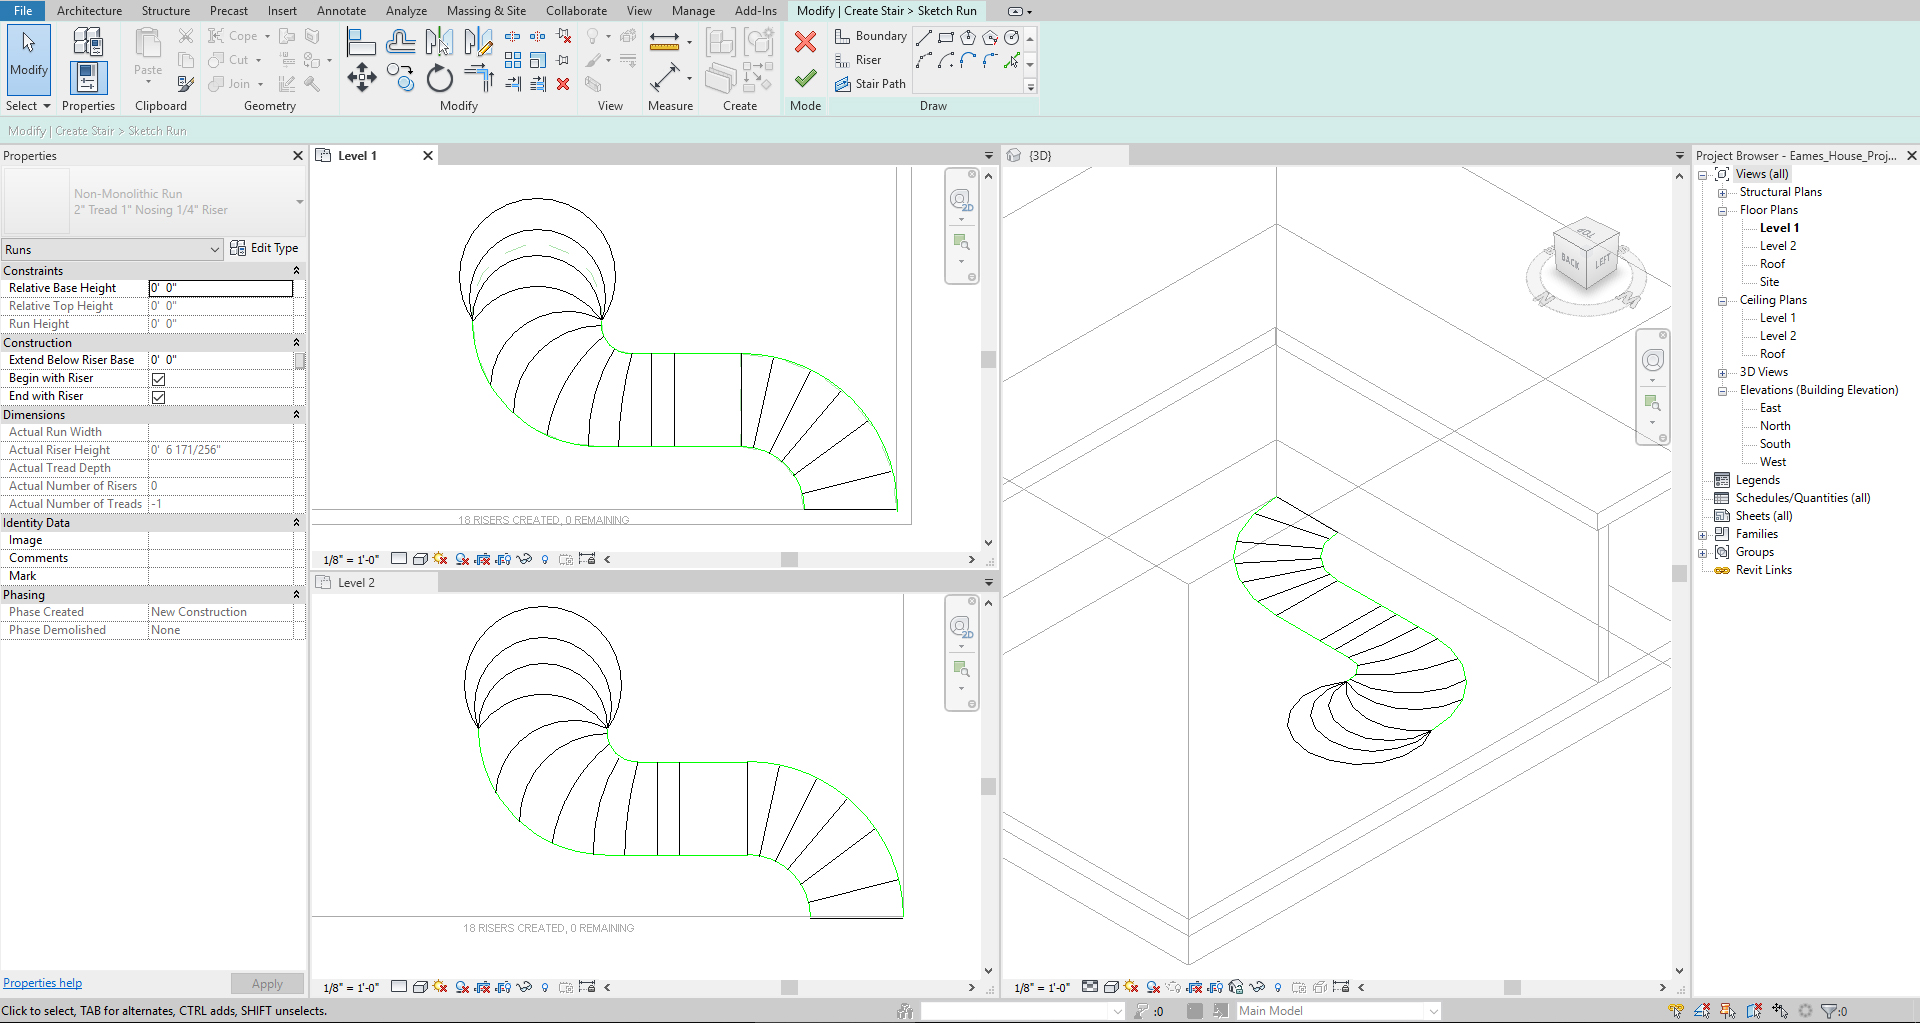 It shows the sketches for the custom stair.